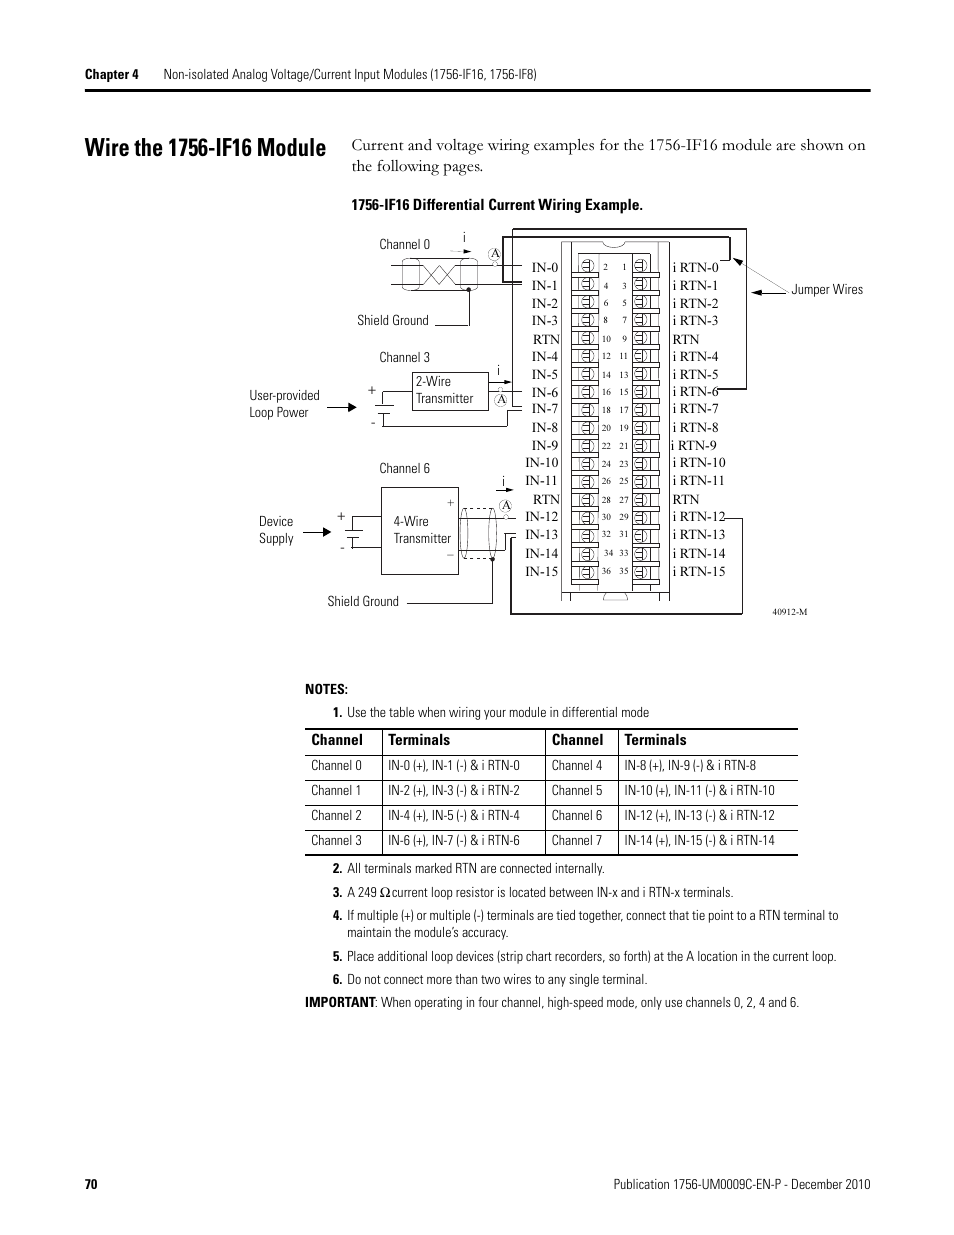 rockwell automation 1756 xxxx controllogix analog i_o modules page70 wire the 1756 if16 module rockwell automation 1756 xxxx rockwell automation wiring diagrams at alyssarenee.co